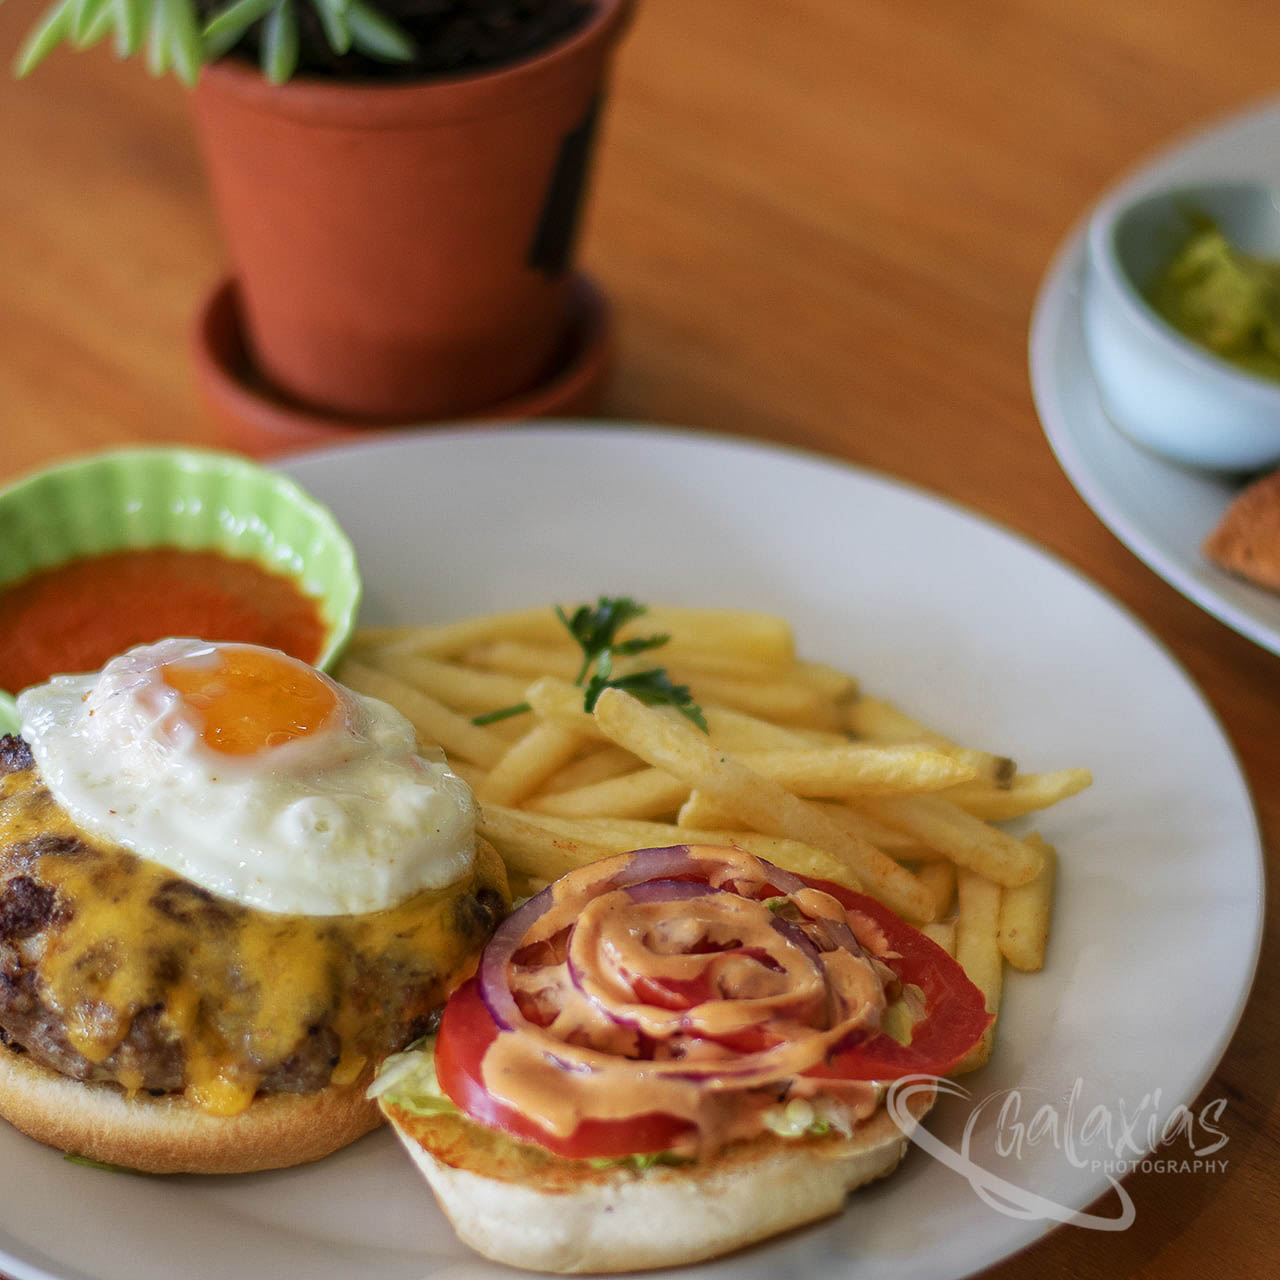 Egg burger by Galaxias Photography